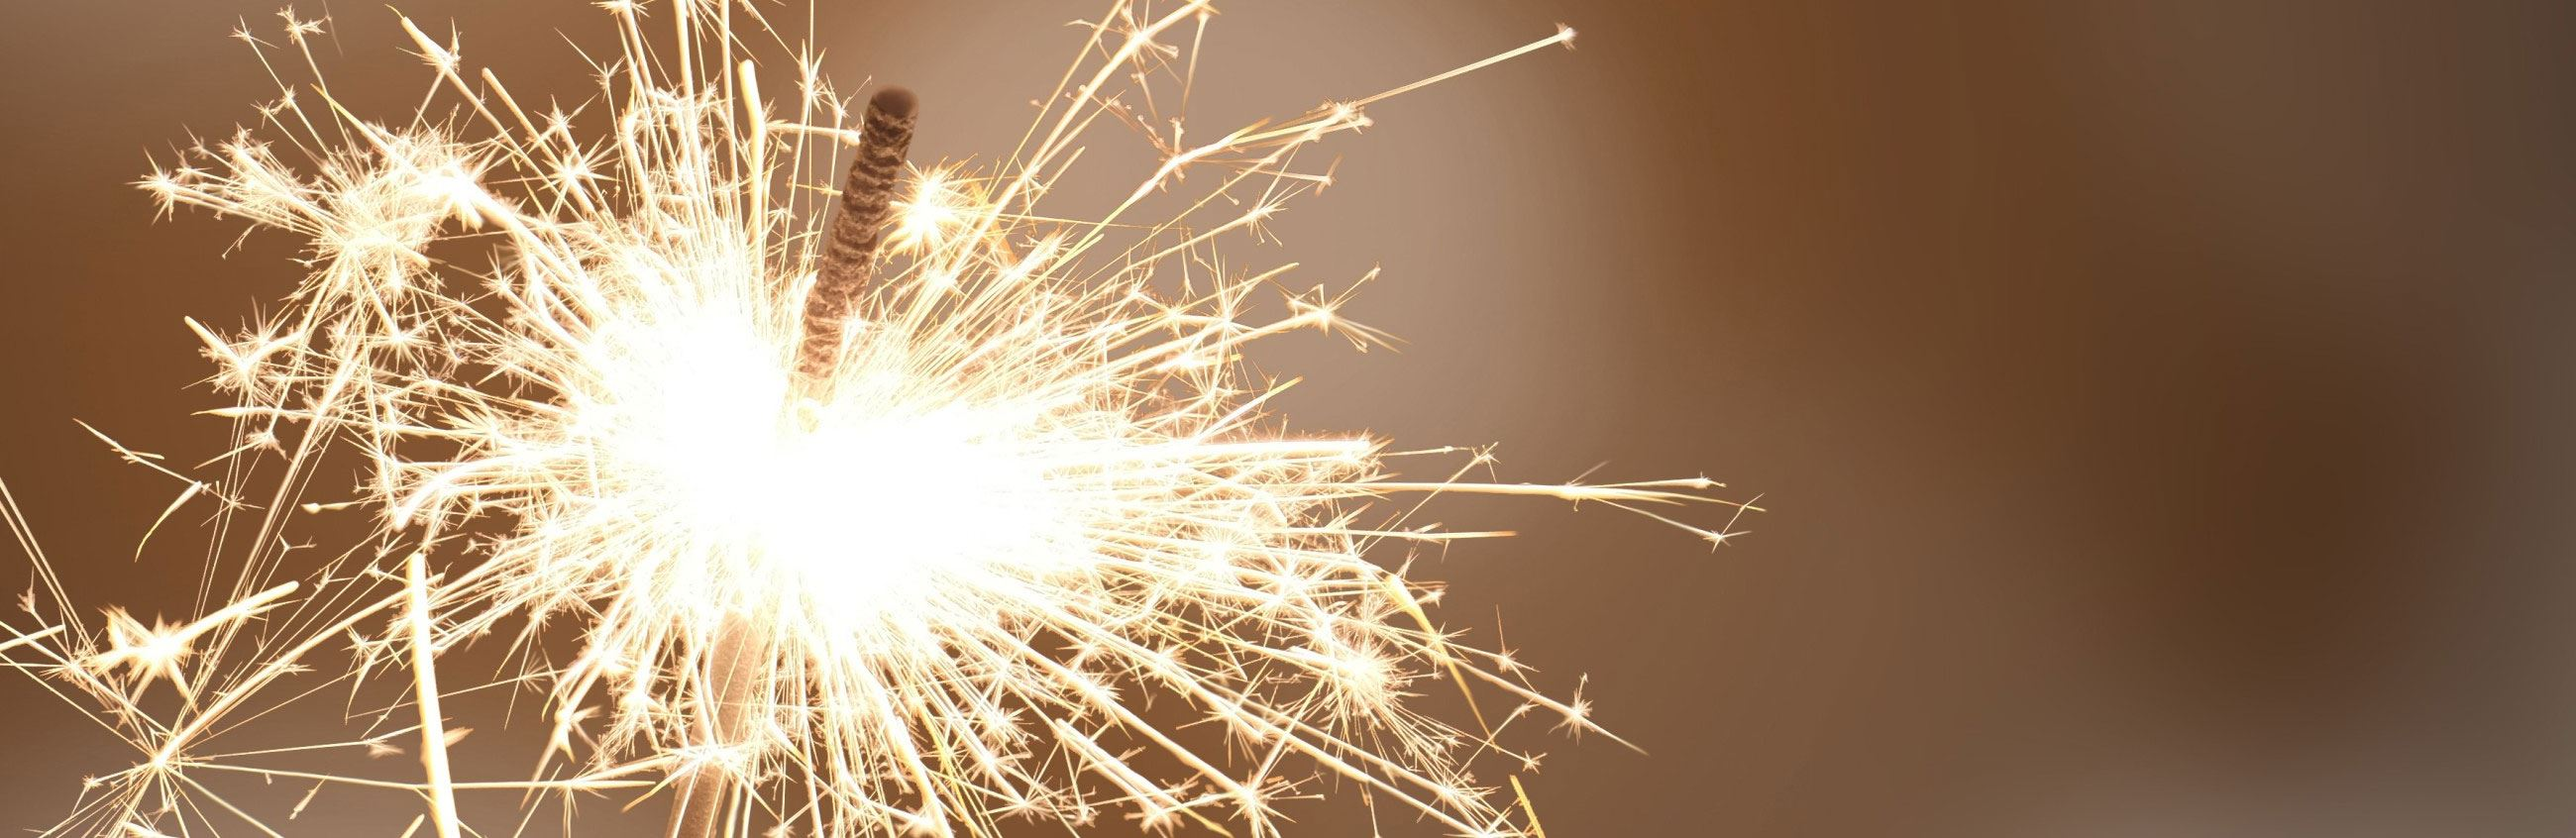 Closeup of Sparkler